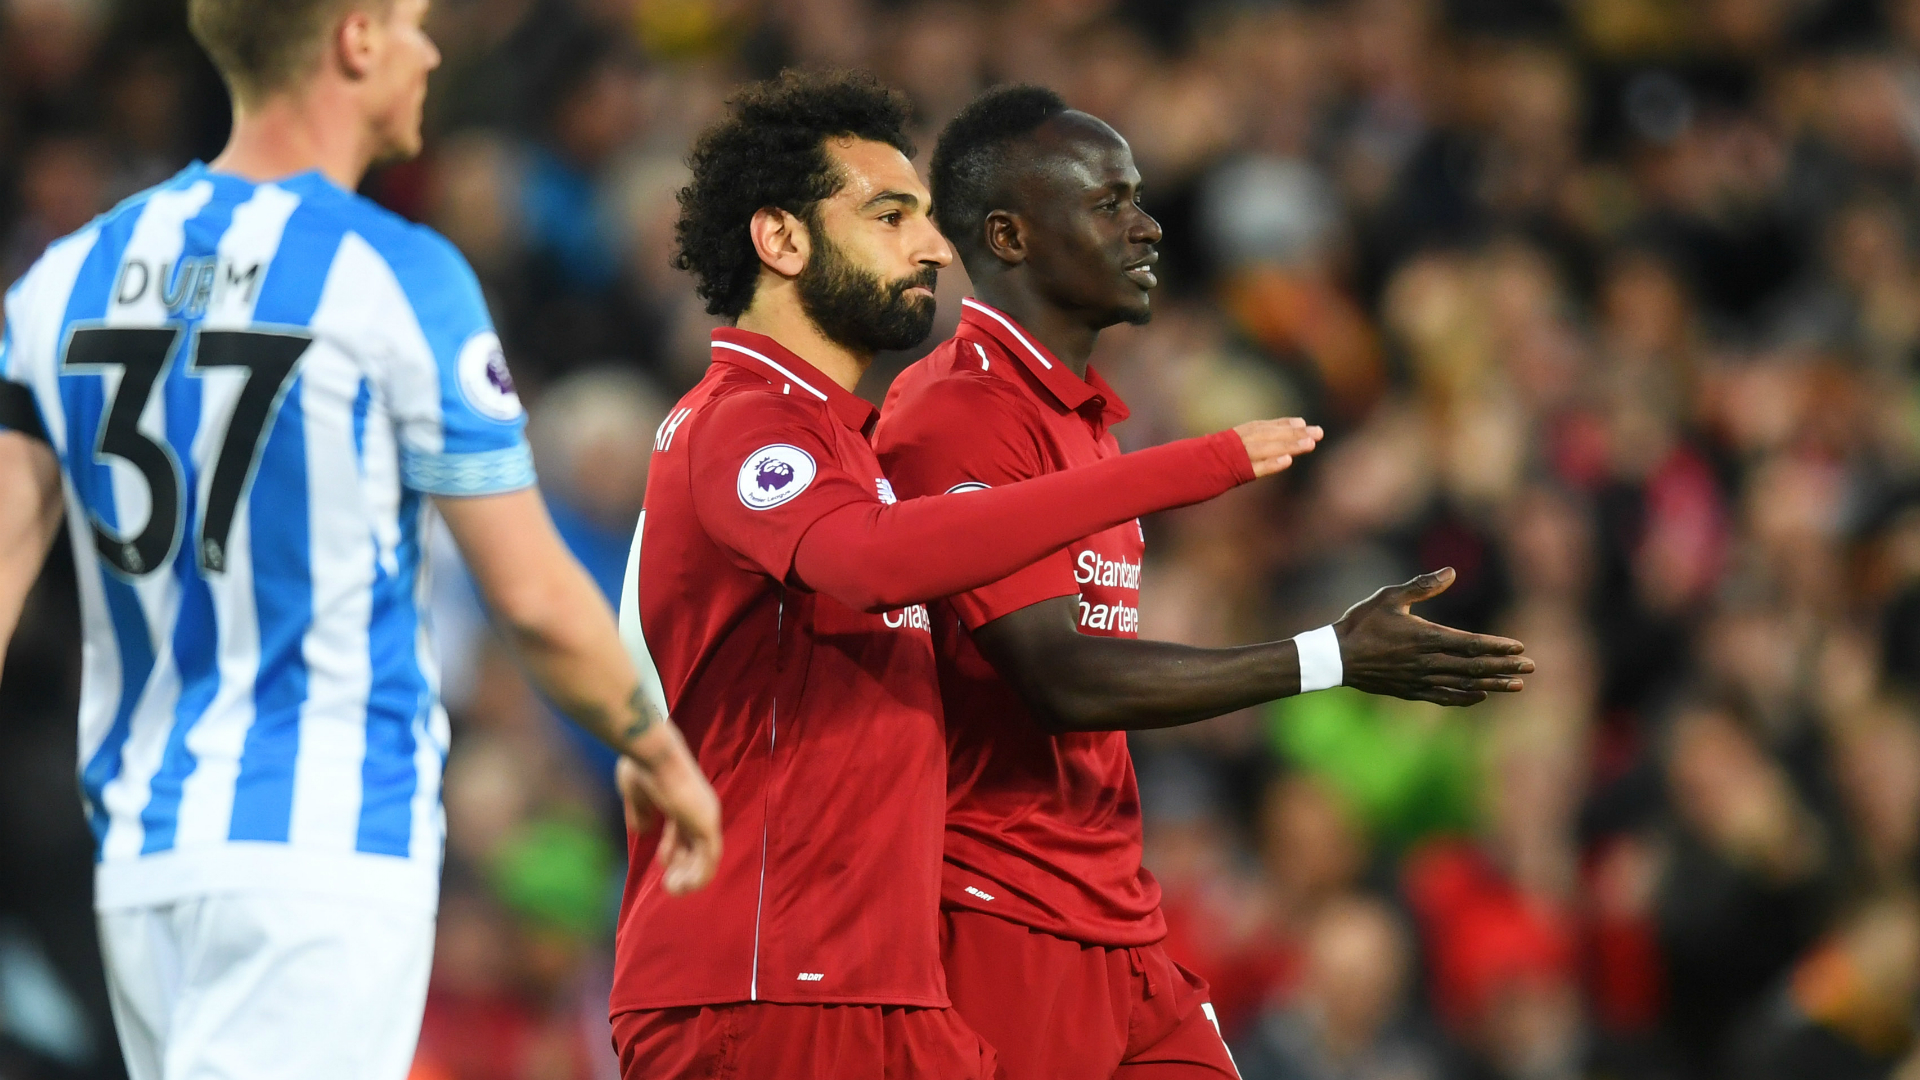 Mohamed Salah and Sadio Mane - cropped